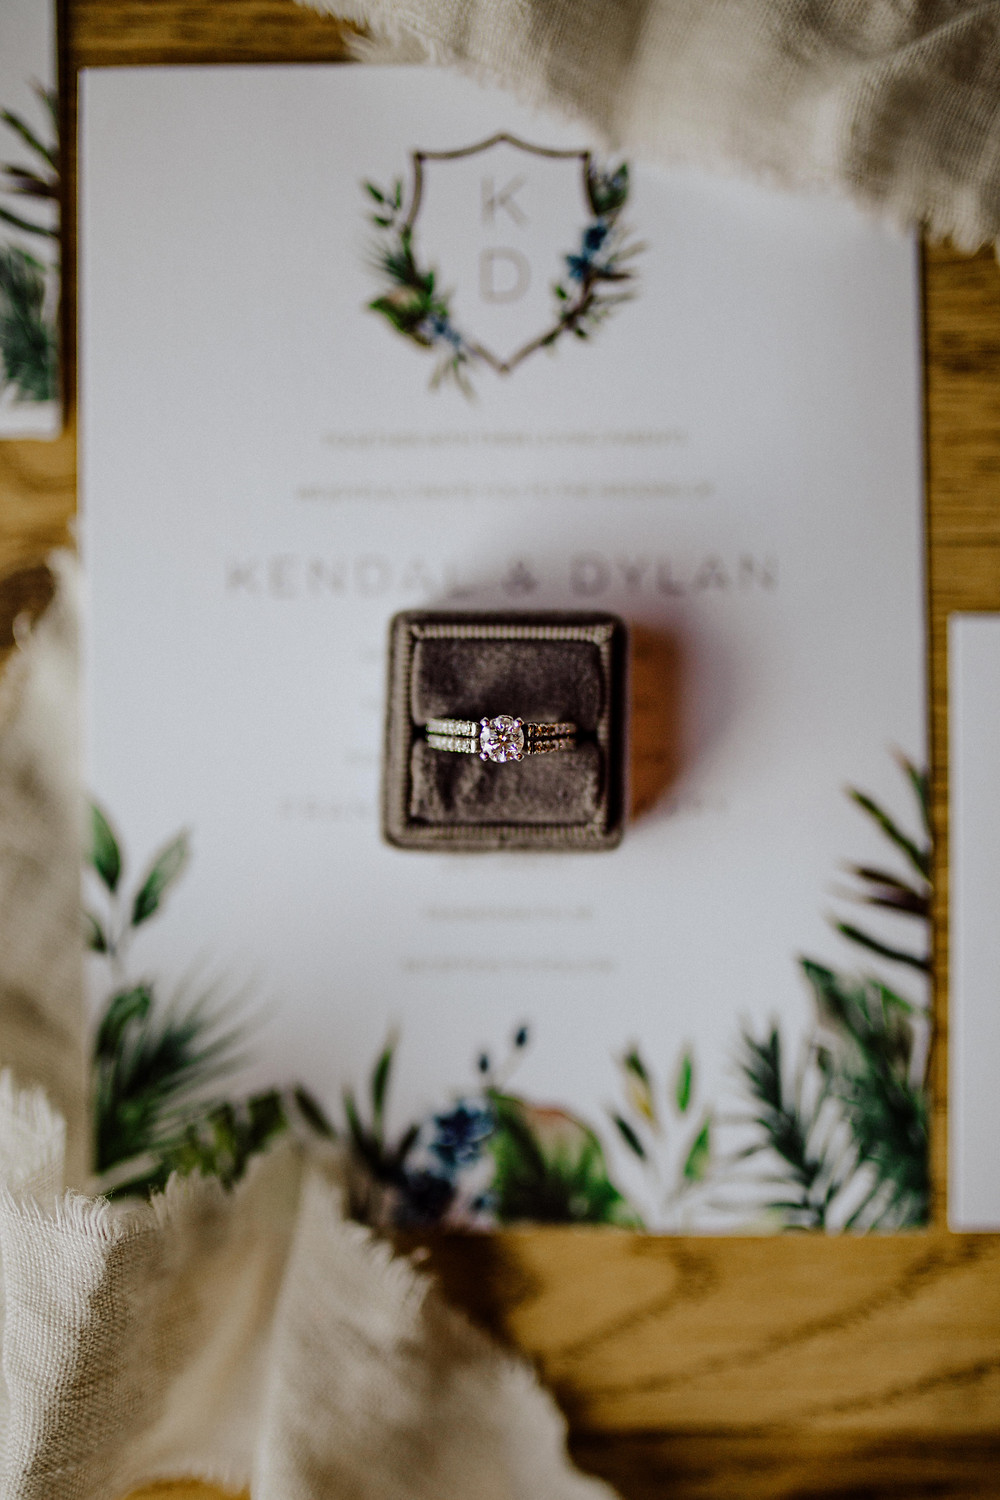 shutterfly wedding stationary photo by little blue bird photography from frankenmuth, Michigan